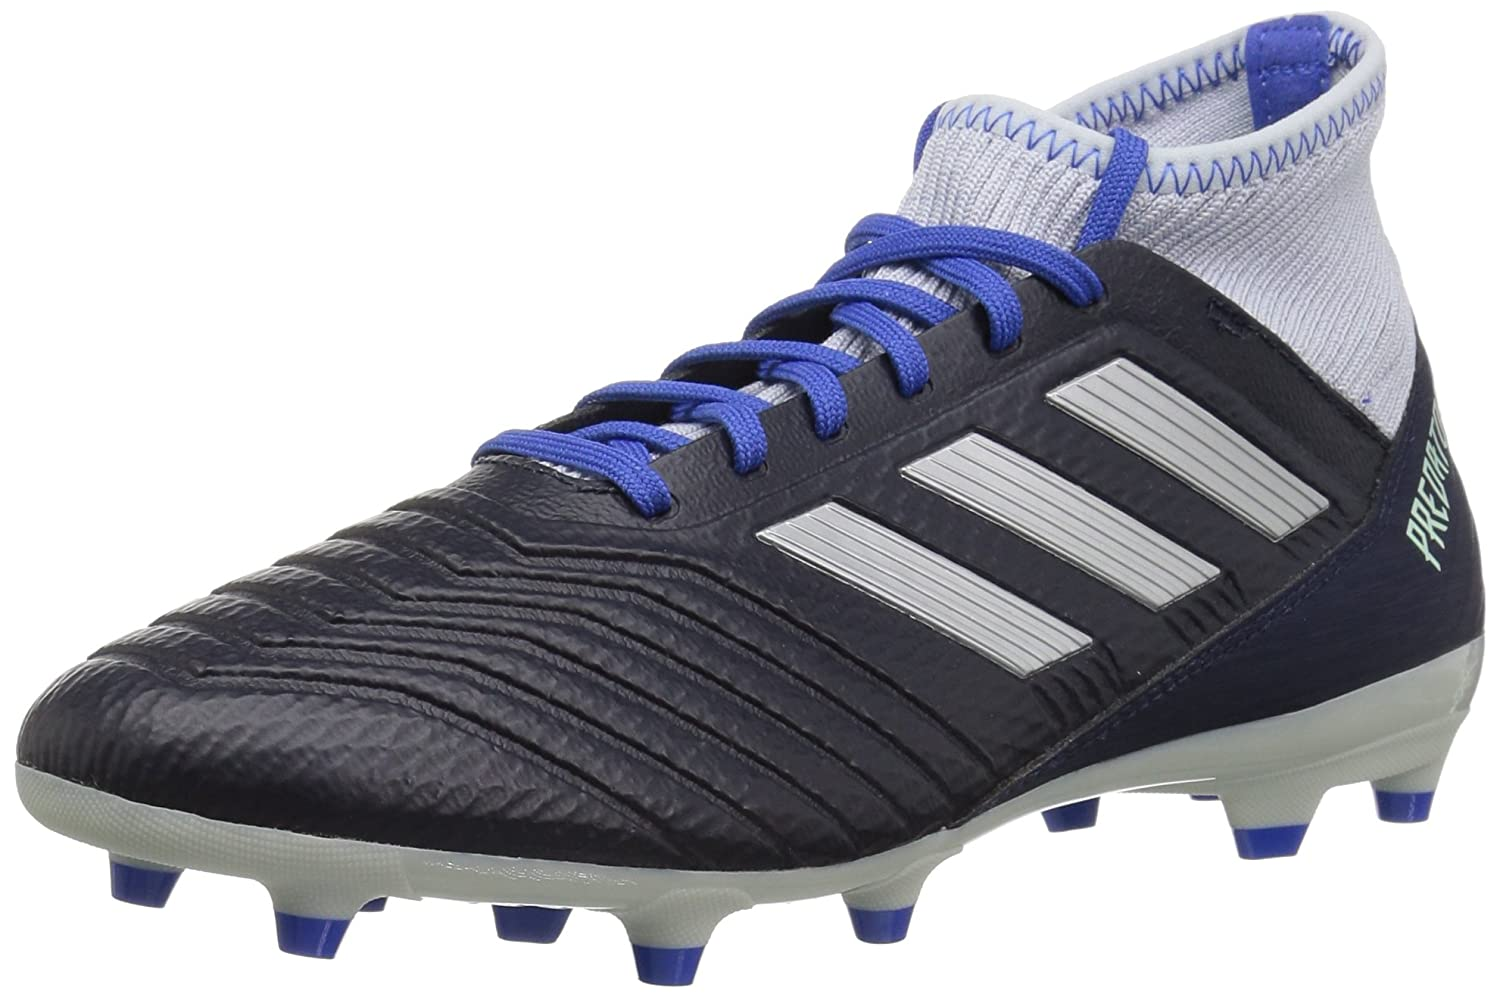 adidas Women's Predator 18.3 Firm Ground Soccer Shoe B0778T3ZTX 8.5 B(M) US|Legend Ink/Silver Metallic/Aero Blue